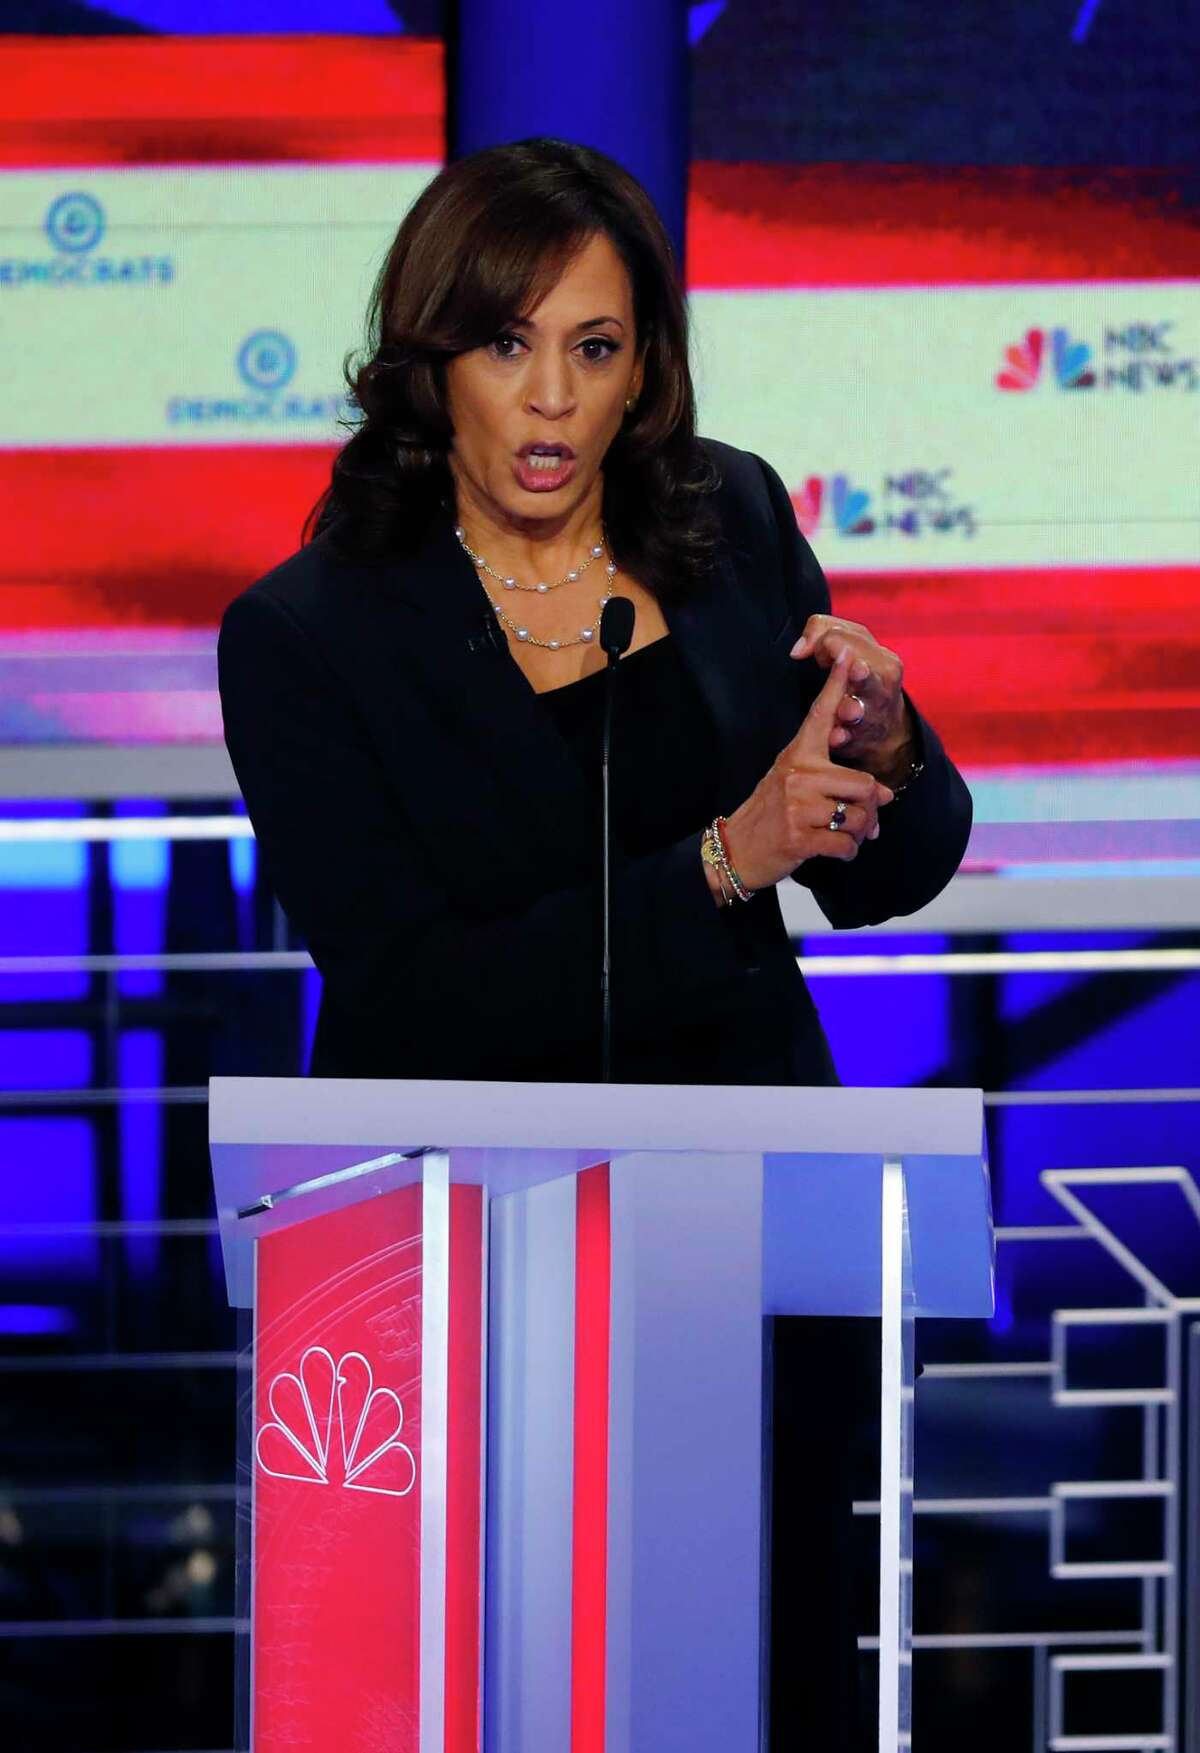 Democratic presidential candidate Sen. Kamala Harris, D-Calif., gestures, during the Democratic primary debate hosted by NBC News at the Adrienne Arsht Center for the Performing Art, Thursday, June 27, 2019, in Miami. (AP Photo/Wilfredo Lee)